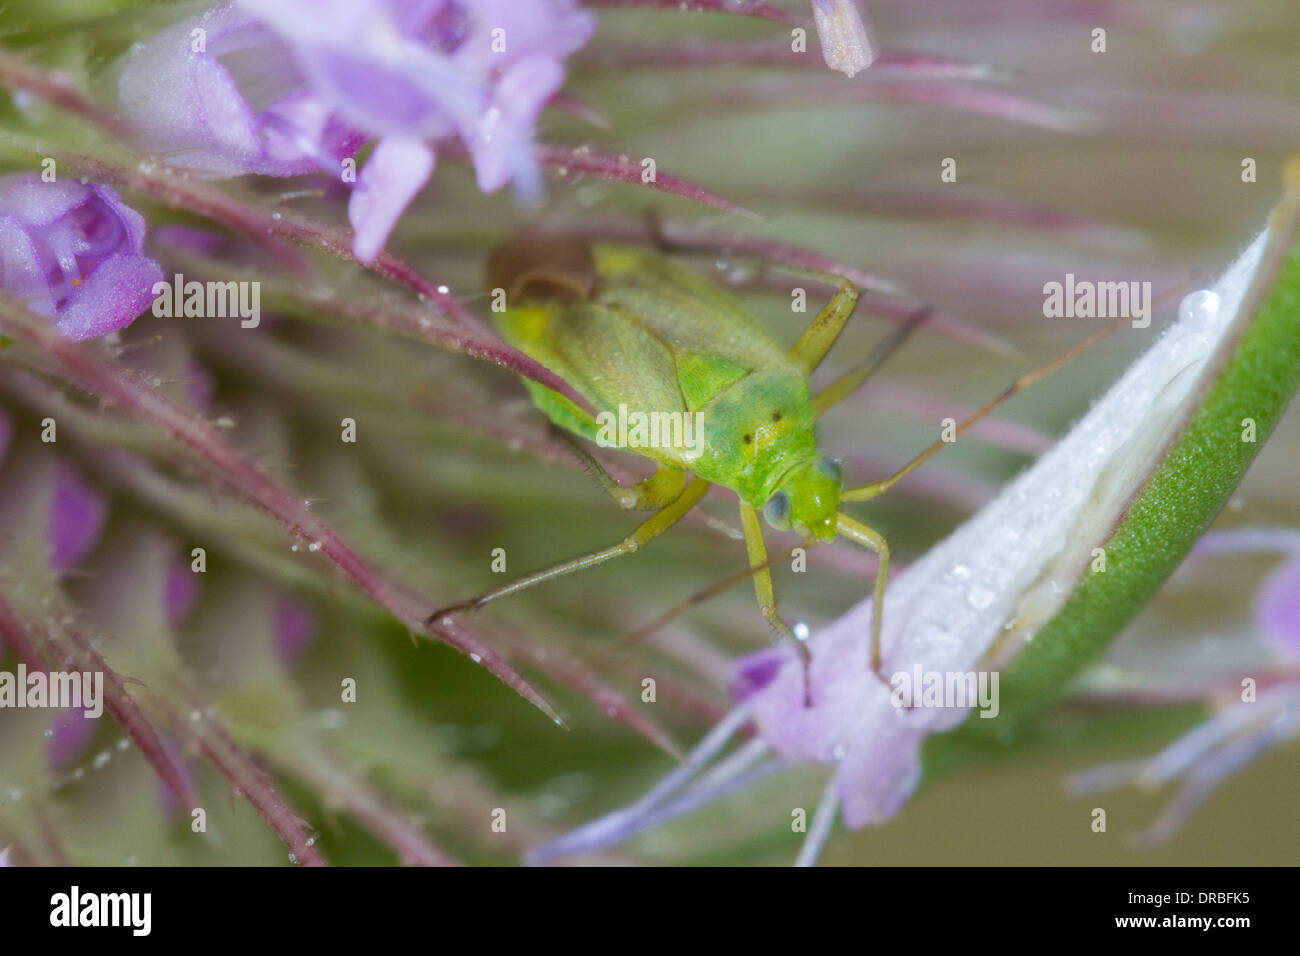 Capsid or Plant Bug (family Miridae) in a teasel flower. Shropshire, England. August. - Stock Image